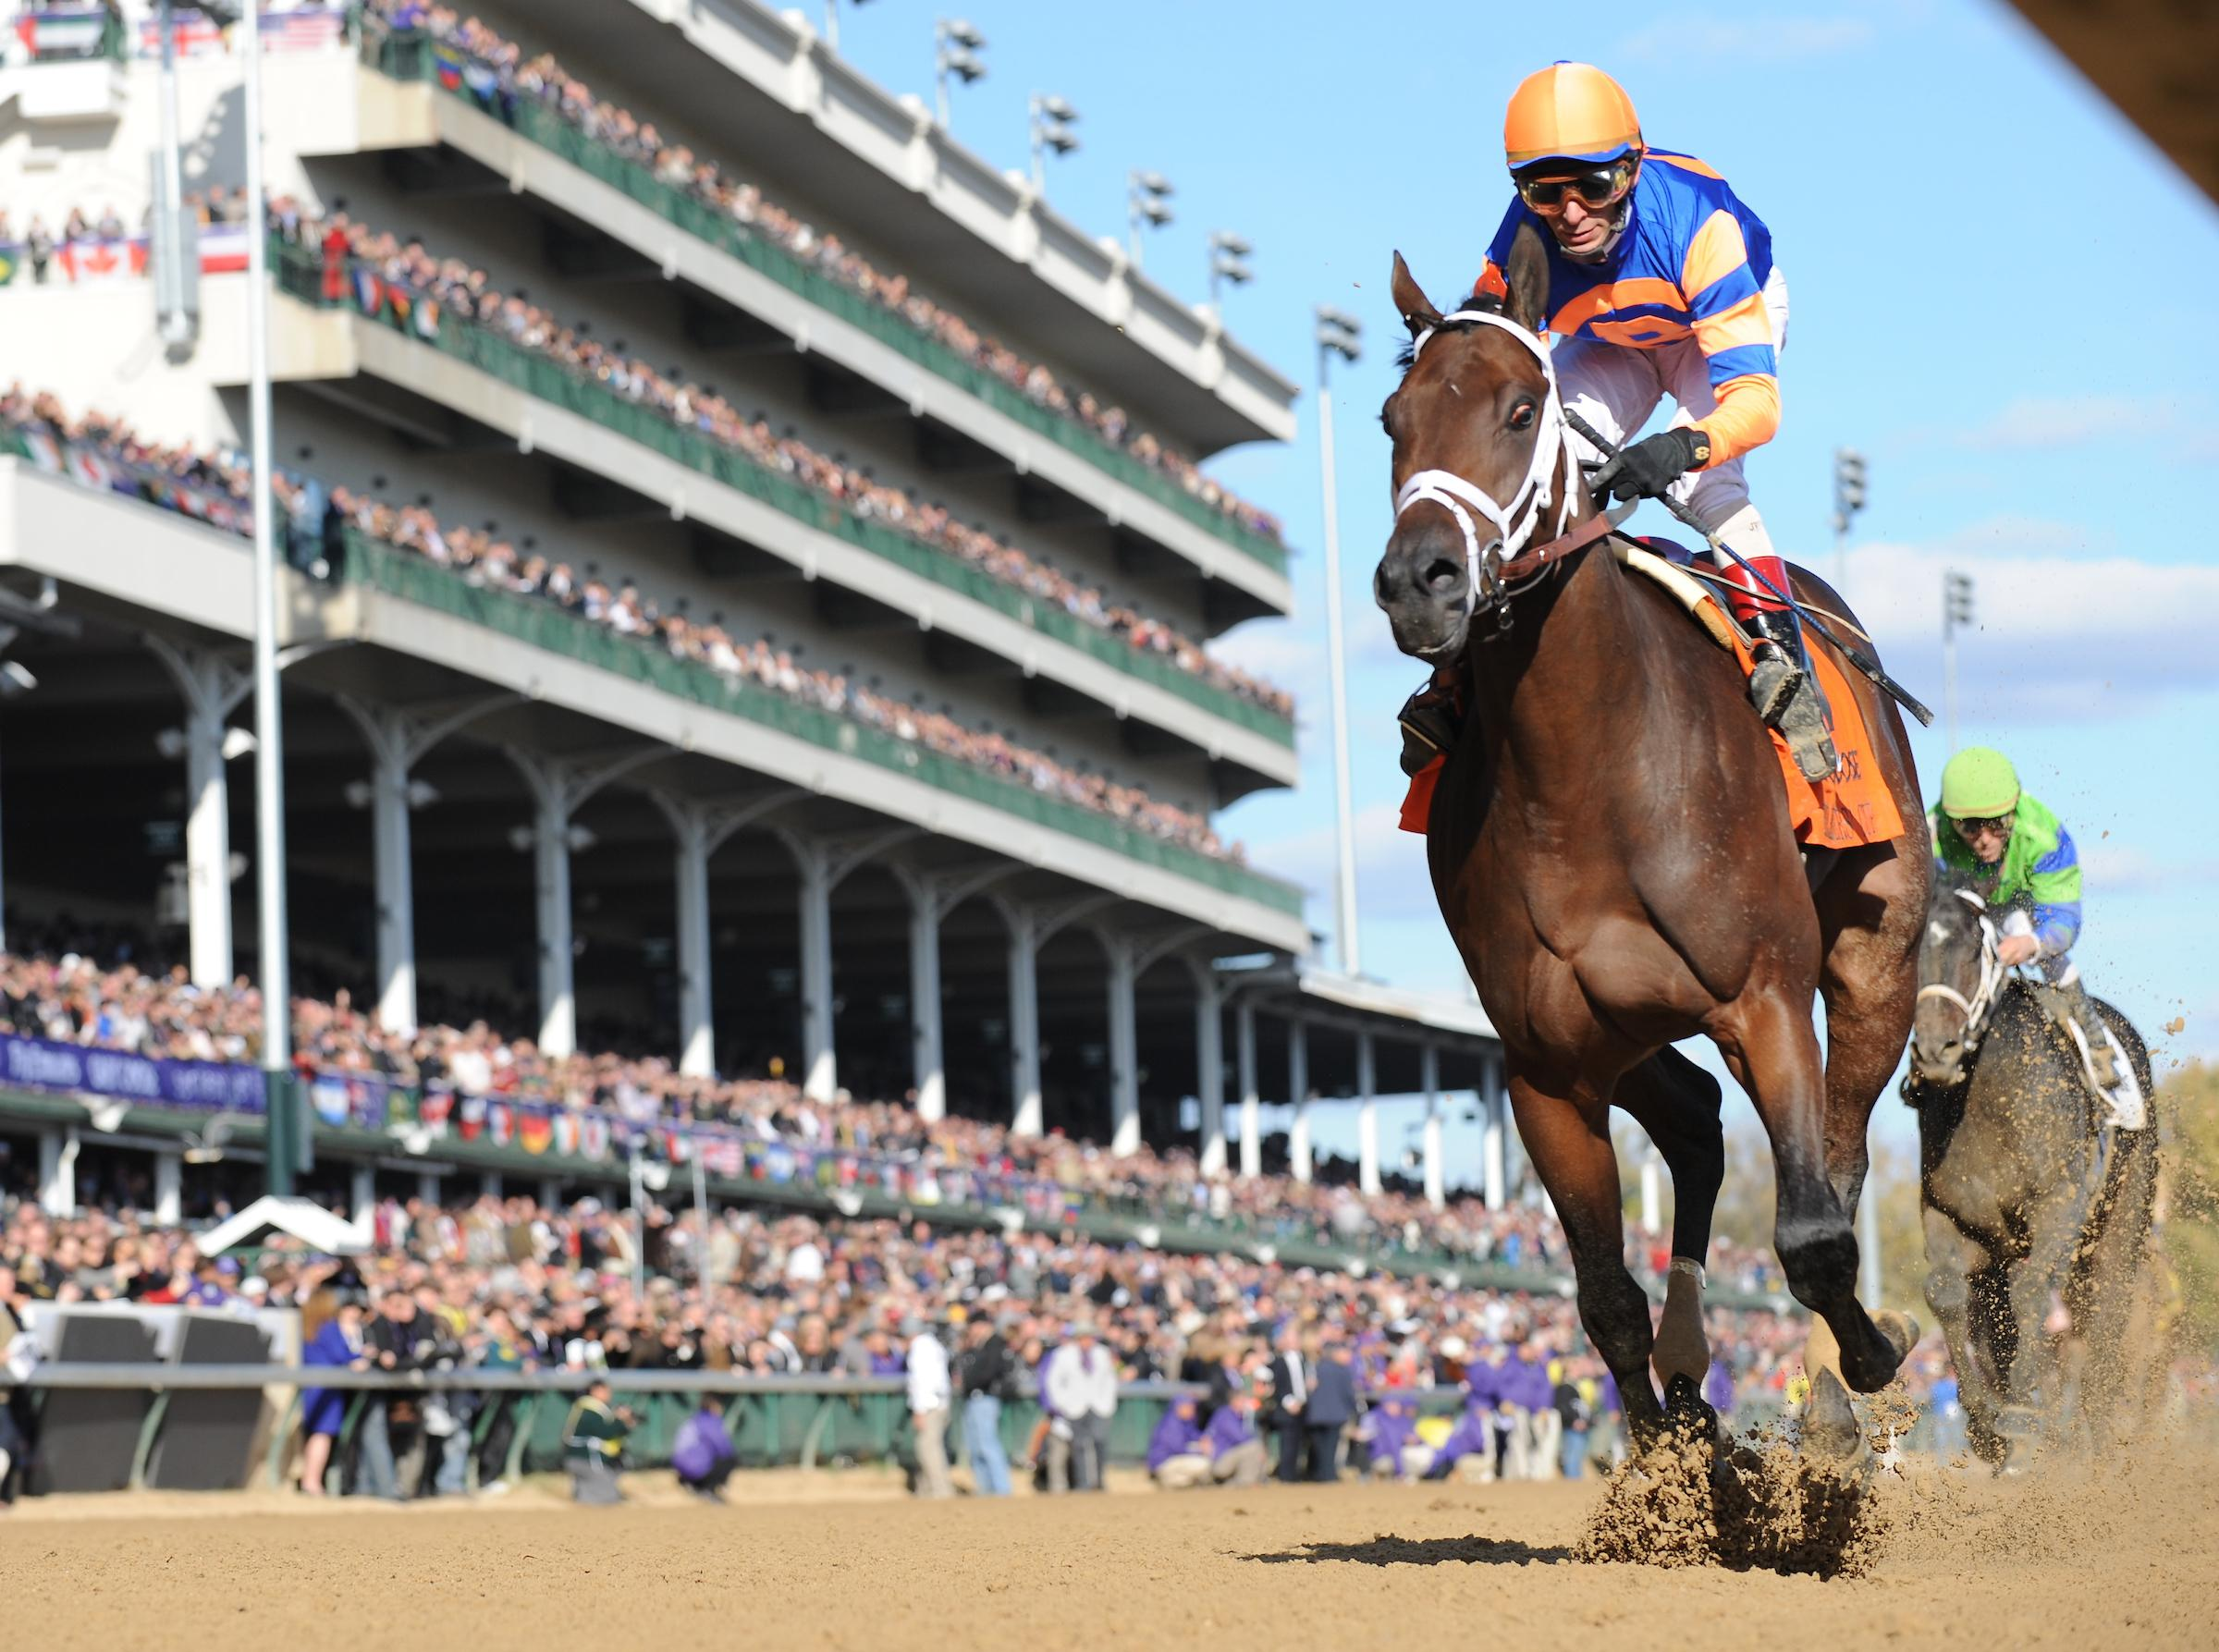 Breeders Cup Under The Microscope How Formidable Are The